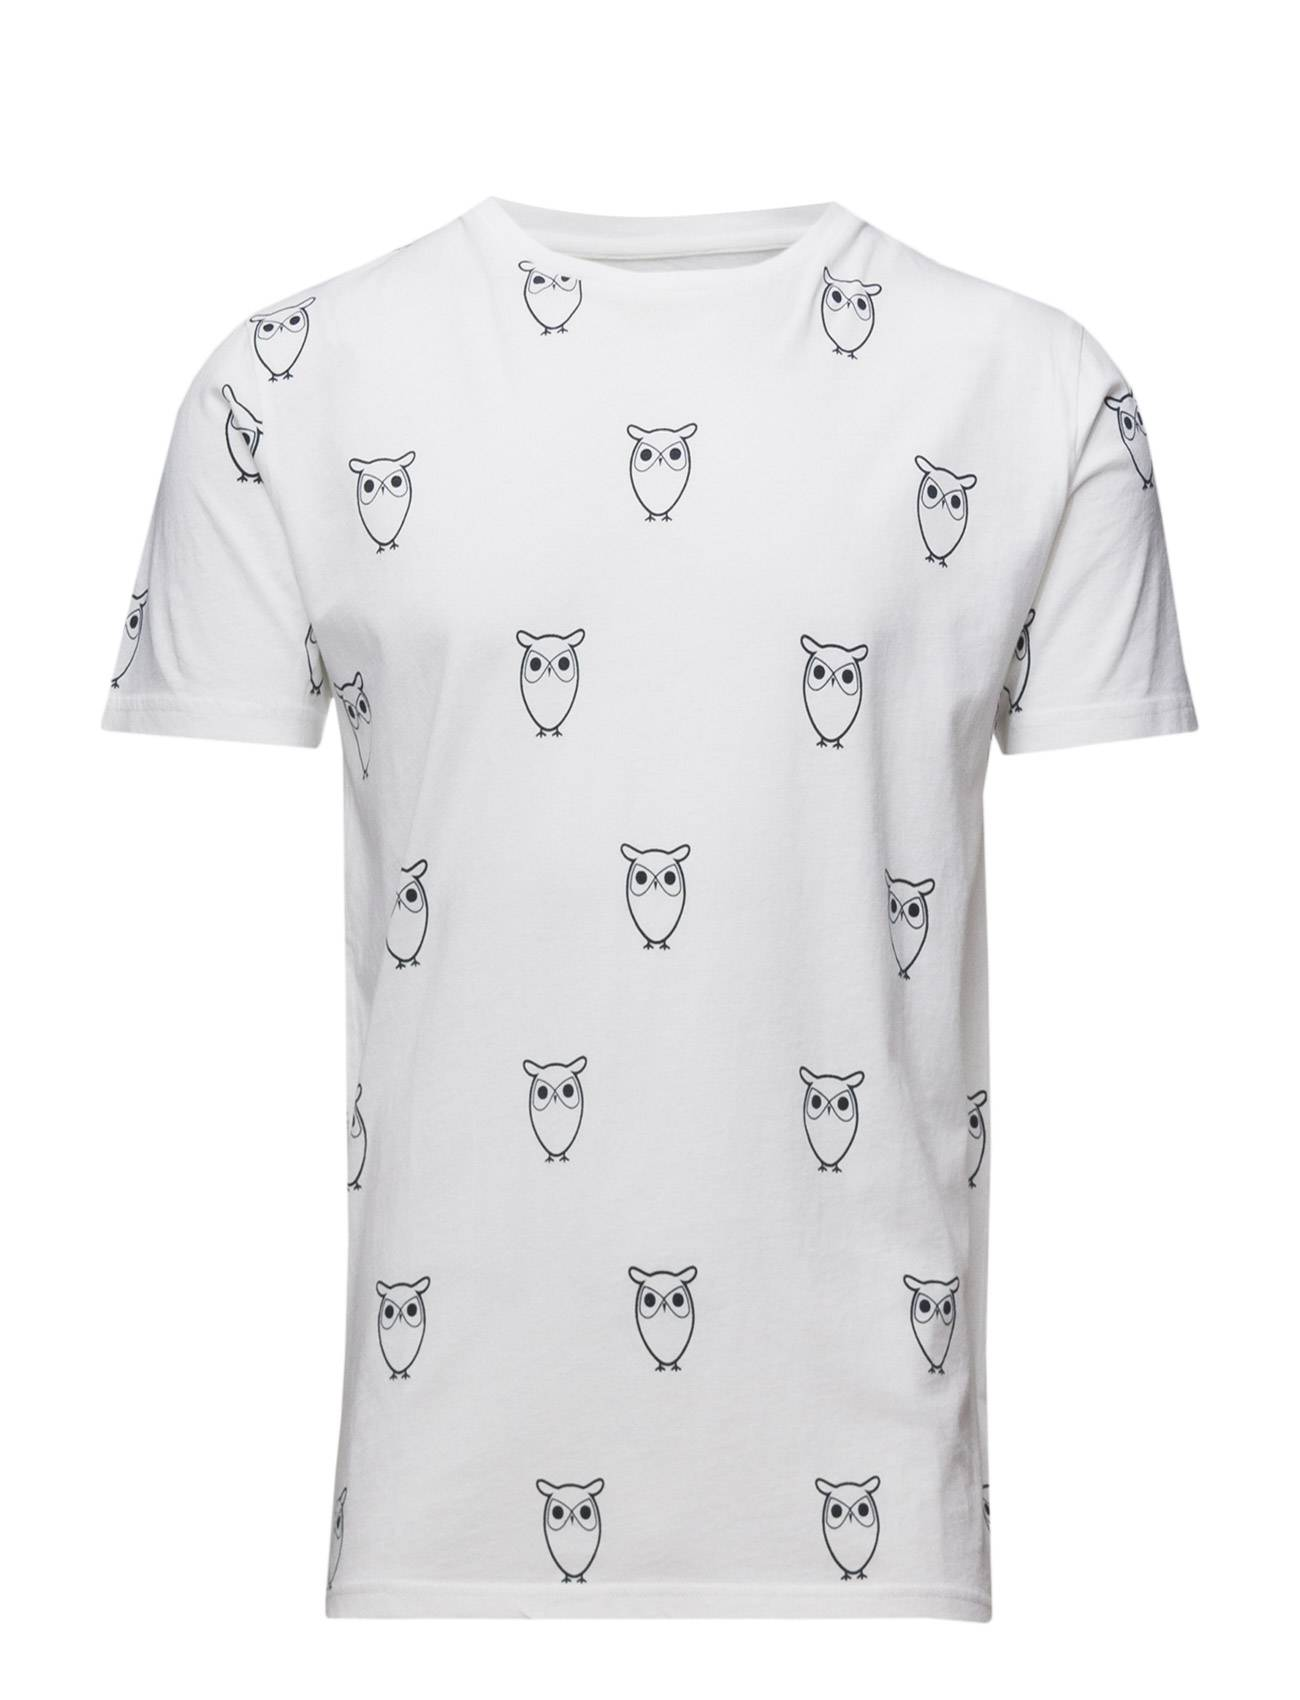 Knowledge Cotton Apparel All Over Big Owl Printed Tee - Gots